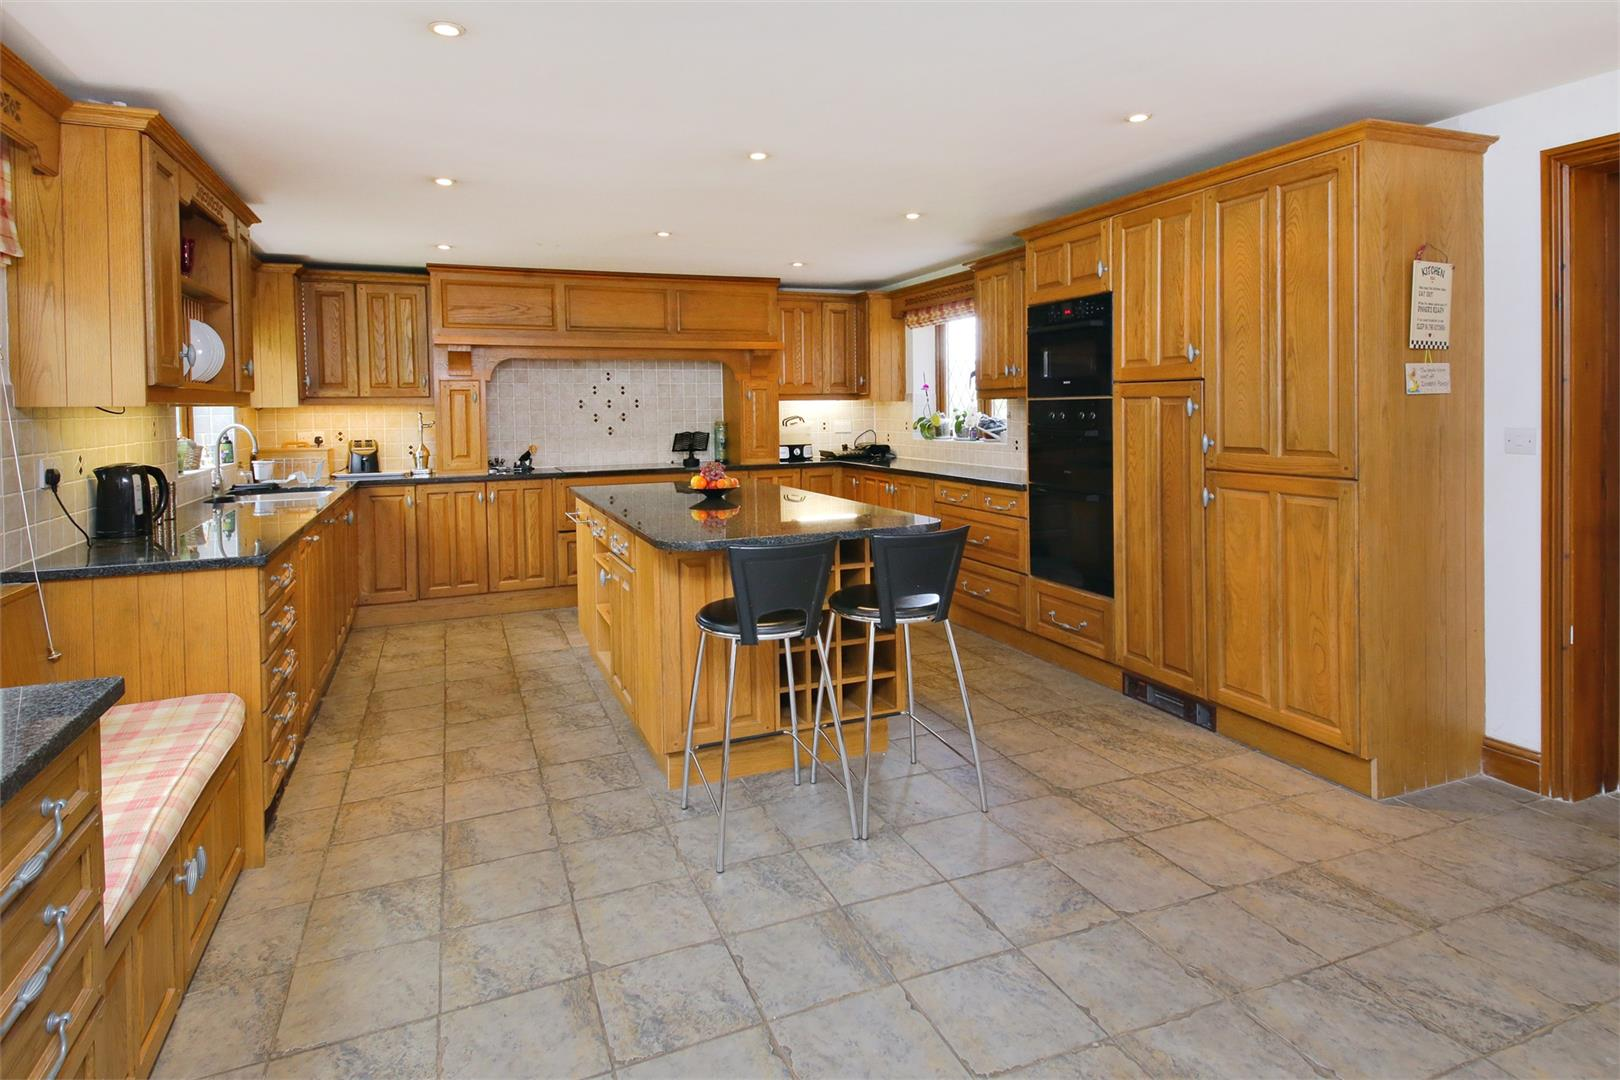 6 bed to rent in Elstree - (Property Image 3)